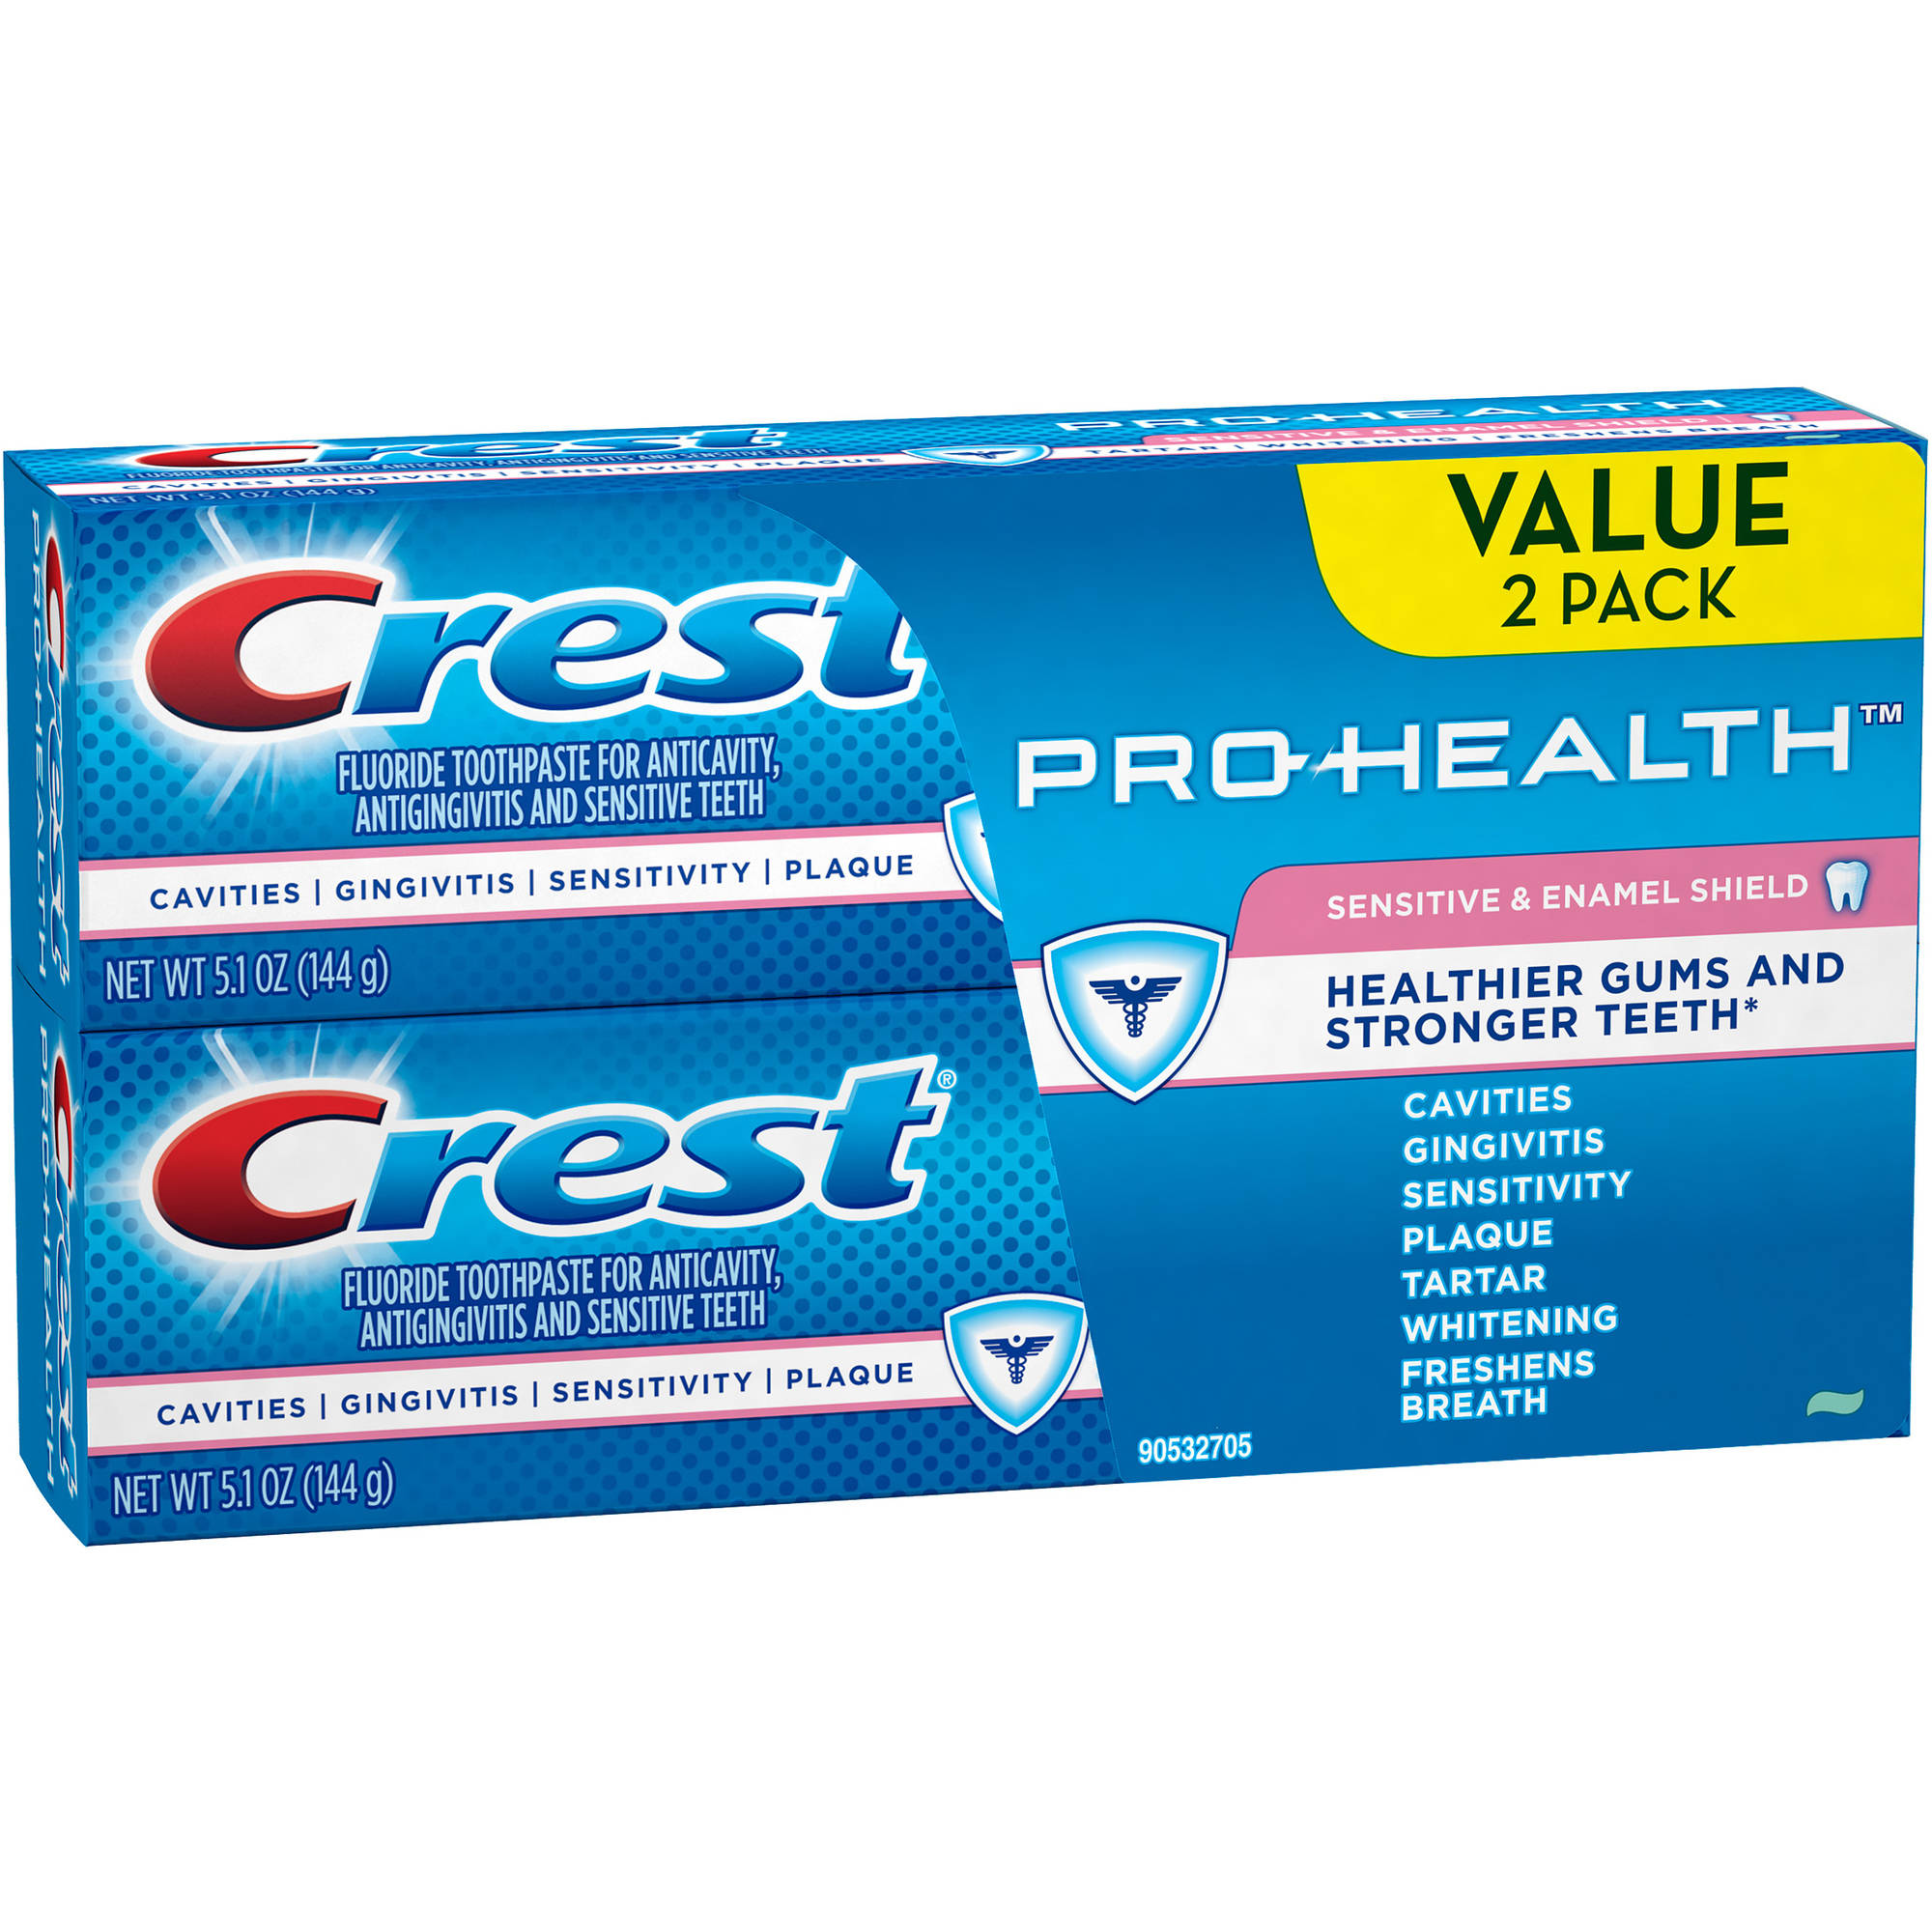 Crest Pro-Health Sensitive & Enamel Shield Toothpaste, 5.1 oz, 2 count